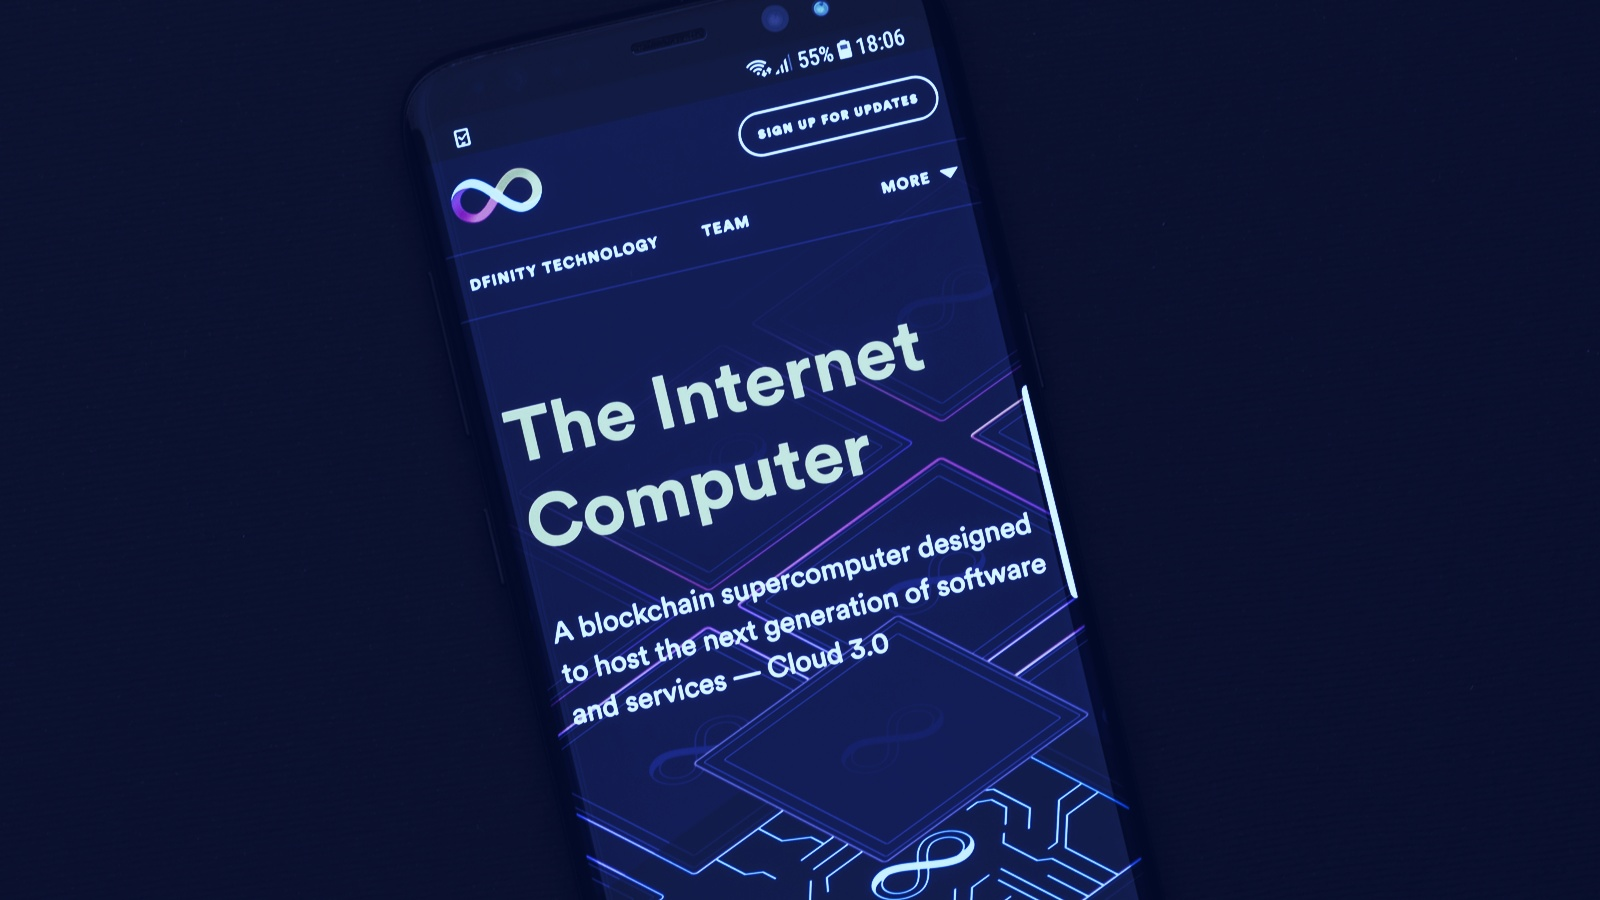 Dfinity Reveals 'Brain' to Power its Internet Computer - Decrypt